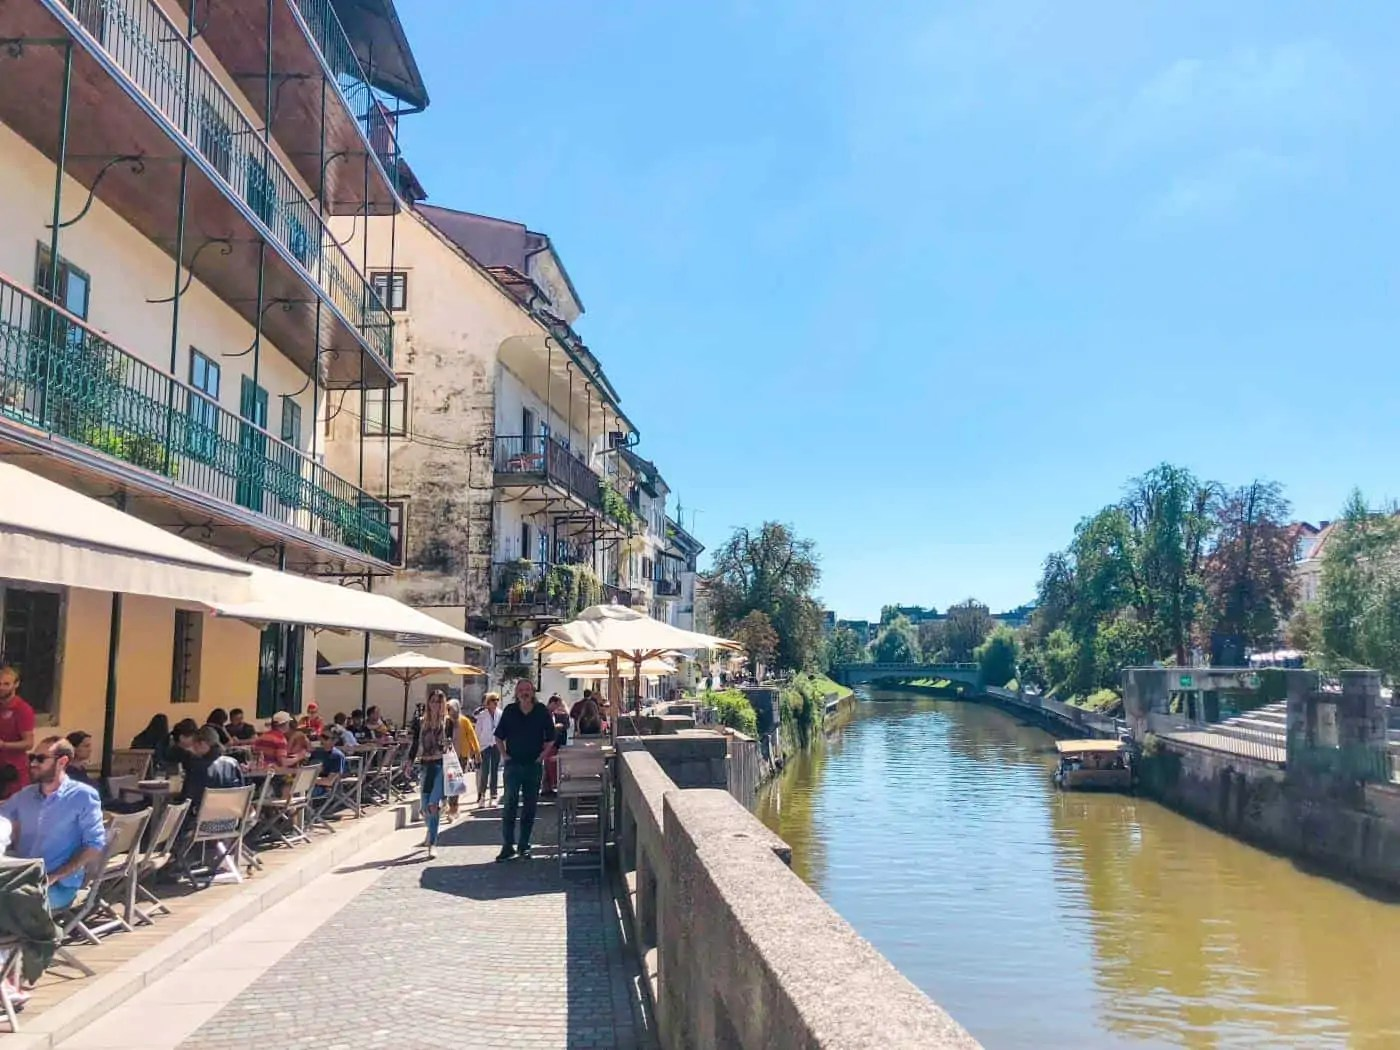 The river front is a lively place to be in Ljubljana